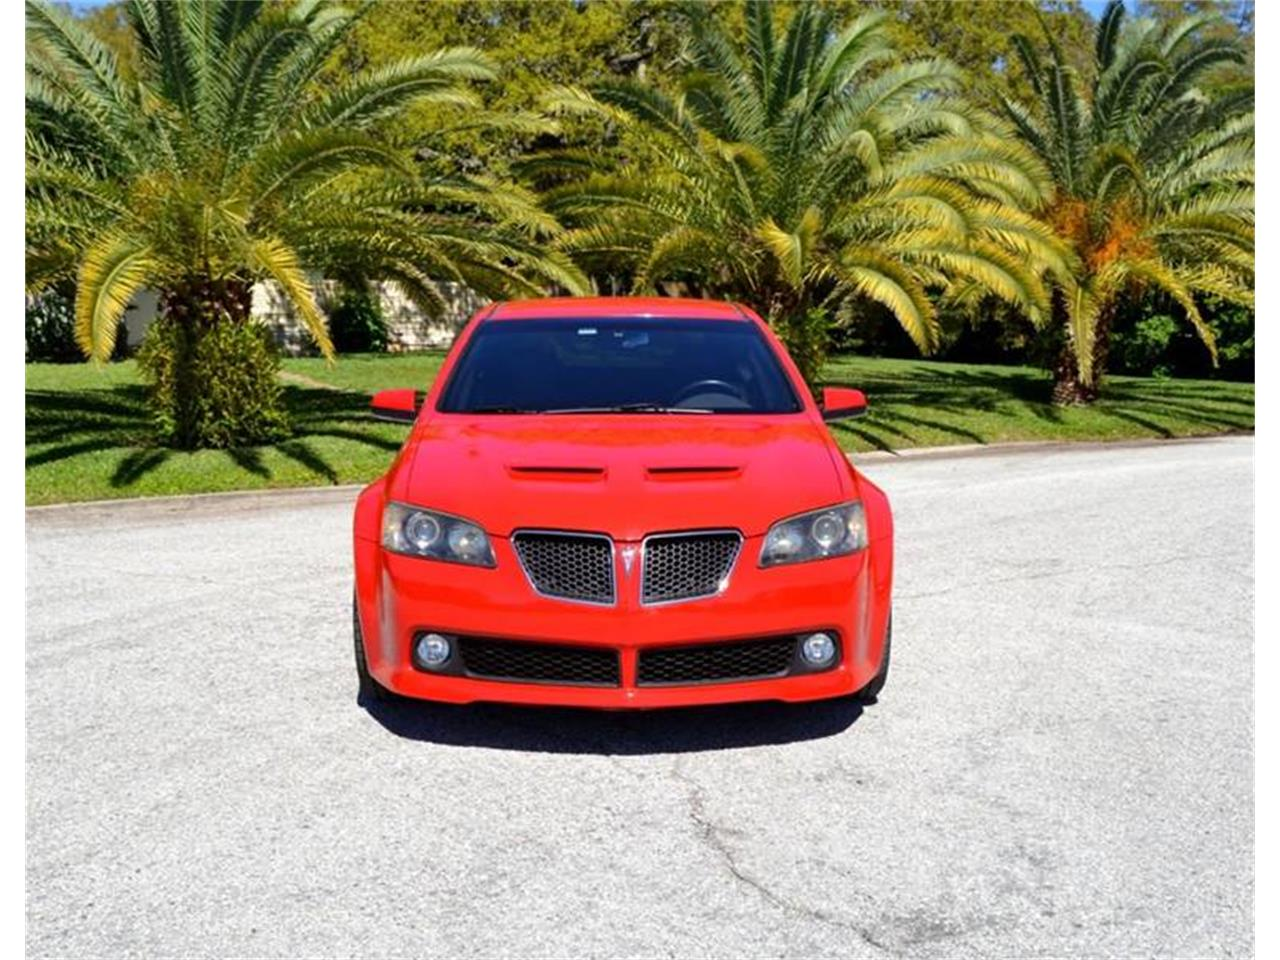 2009 Pontiac G8 for sale in Clearwater, FL – photo 7